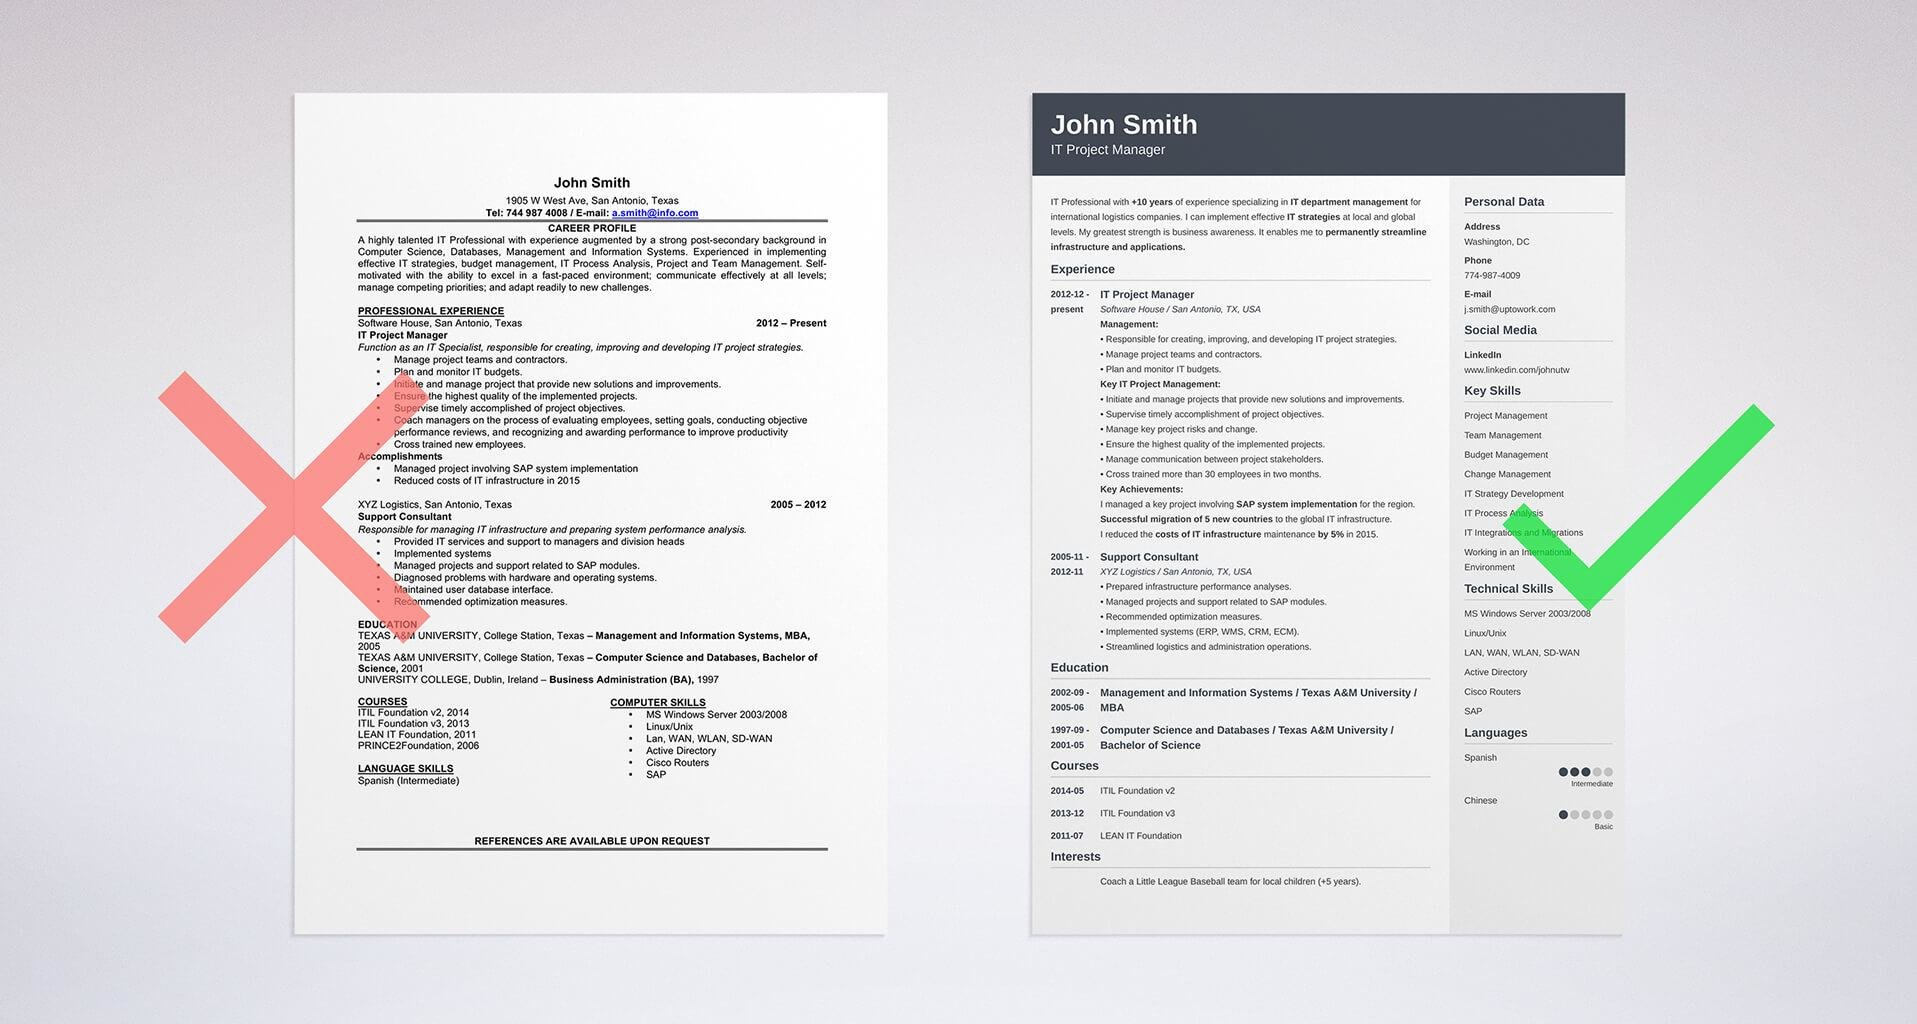 Superior Uptowork Pertaining To Format Of Resume